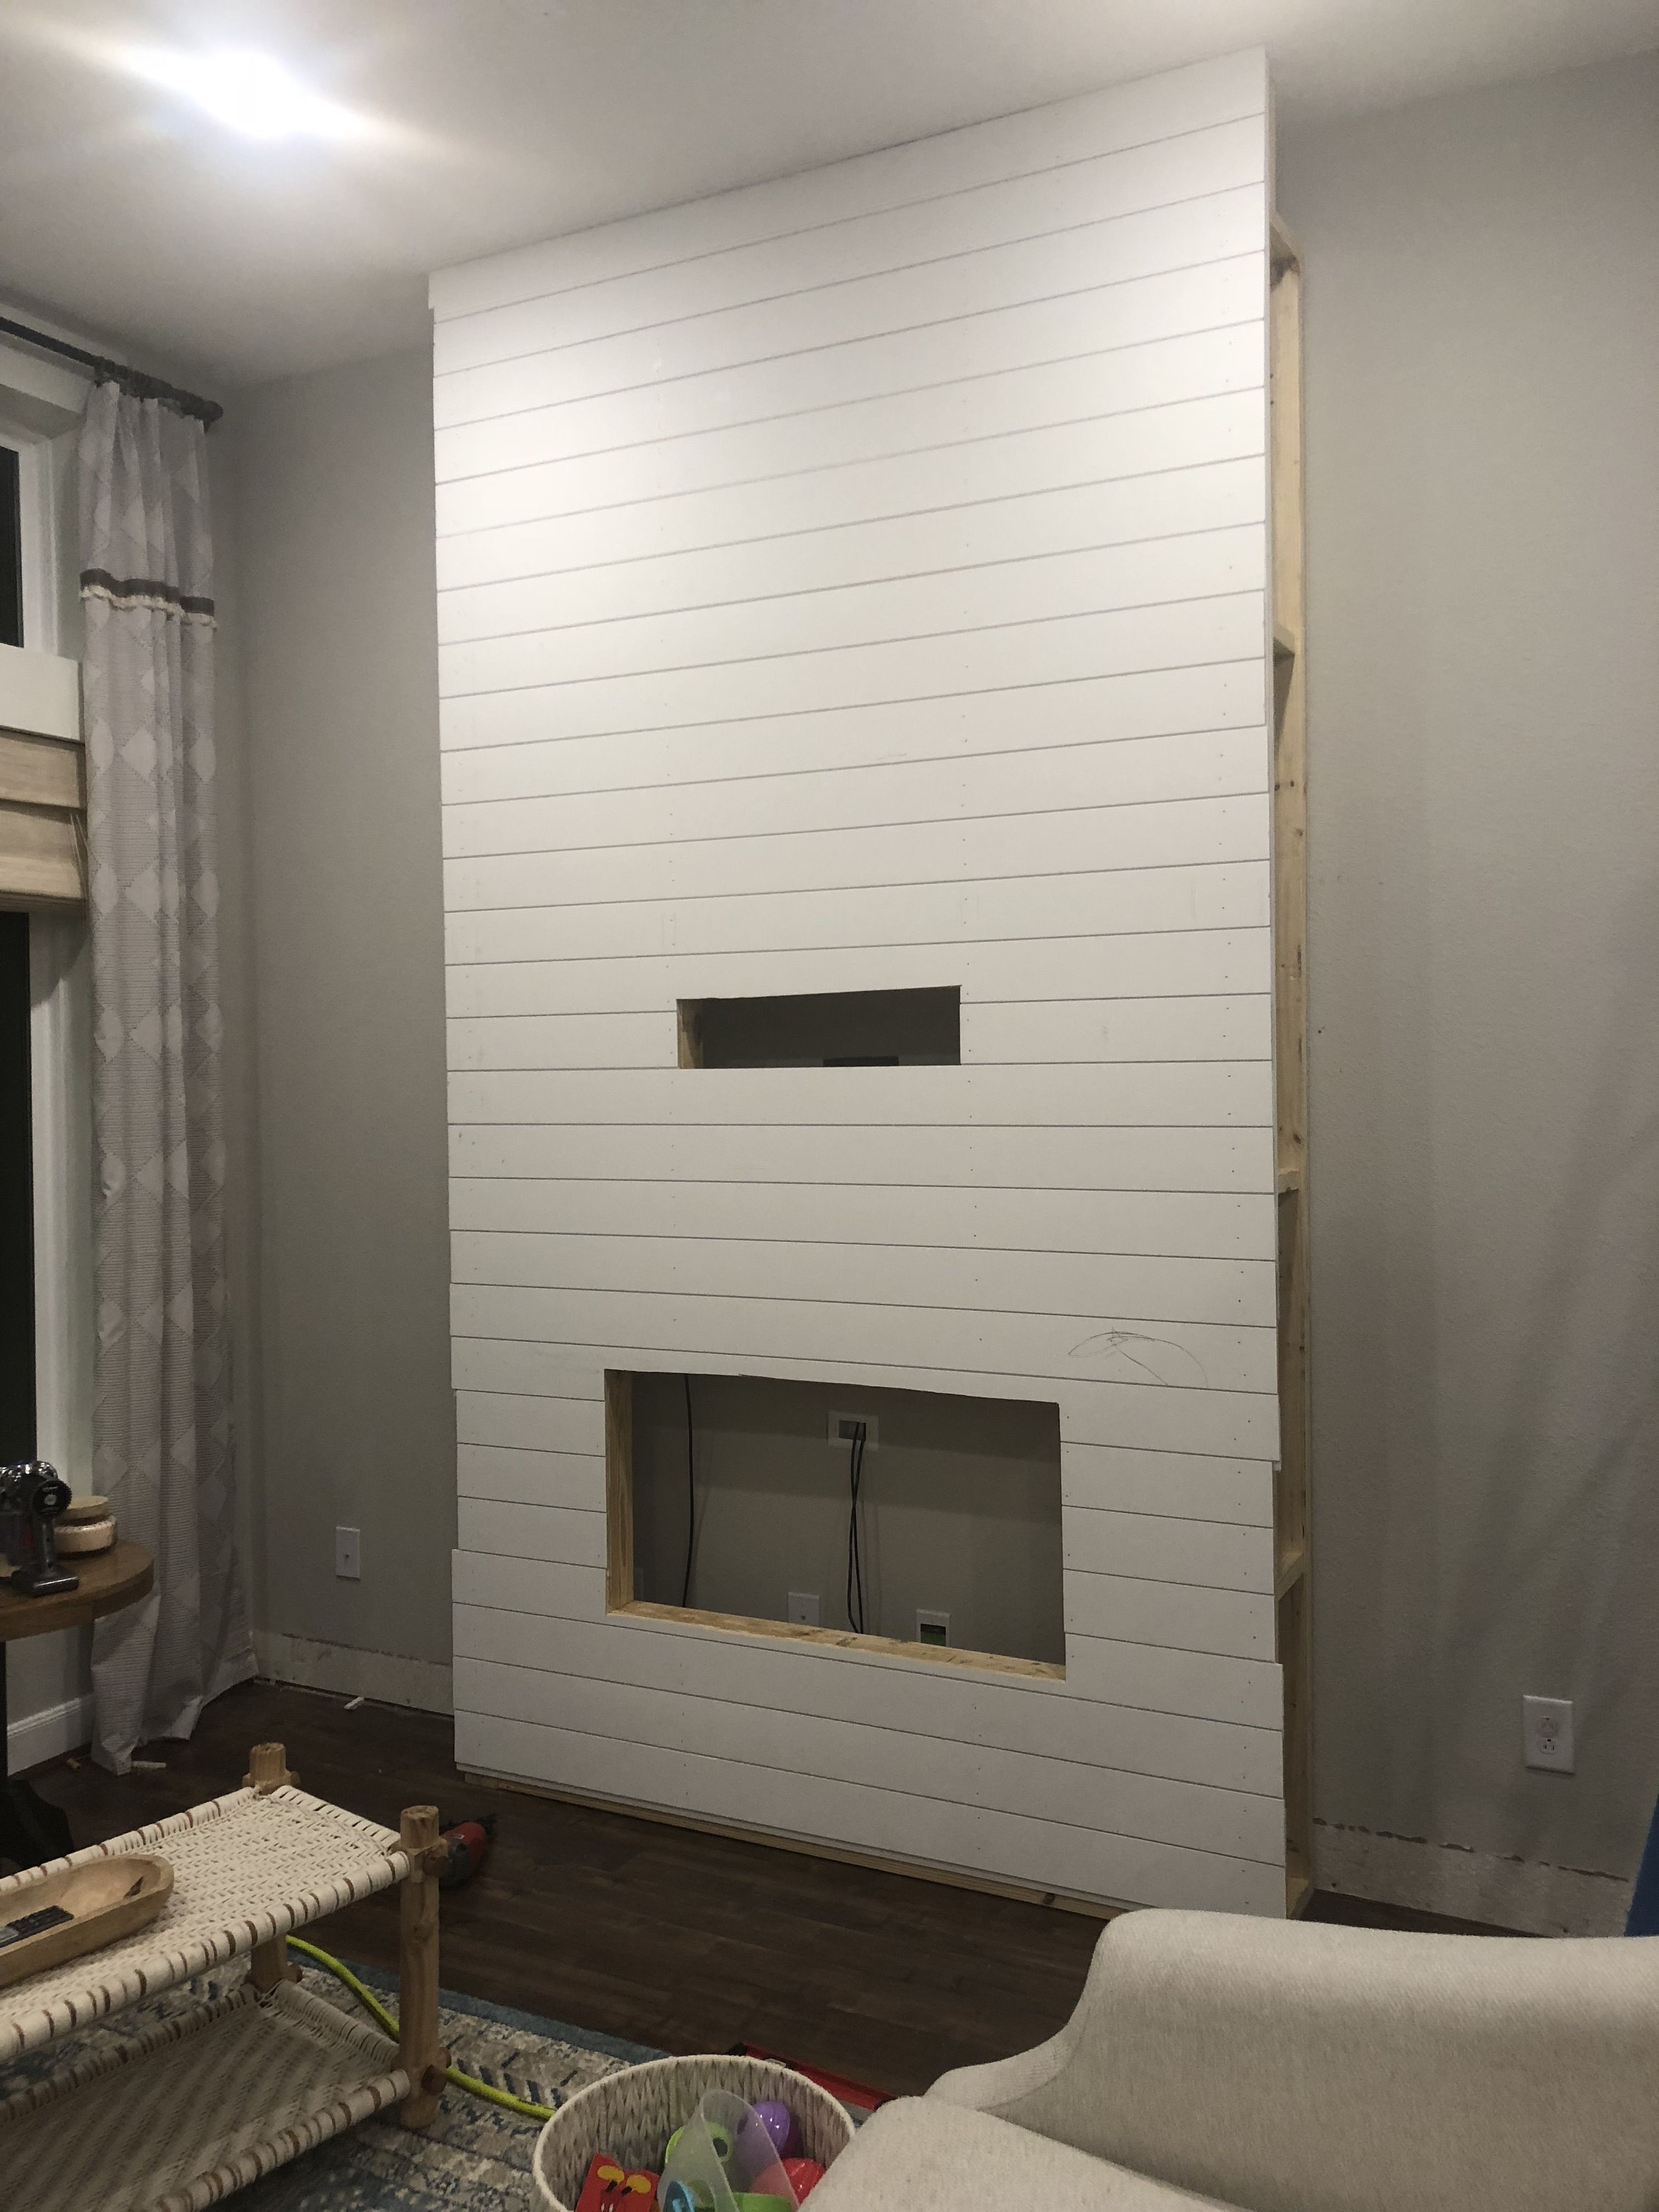 Installing a Fireplace + Our New Samsung Frame TV - The Blooming Nest -